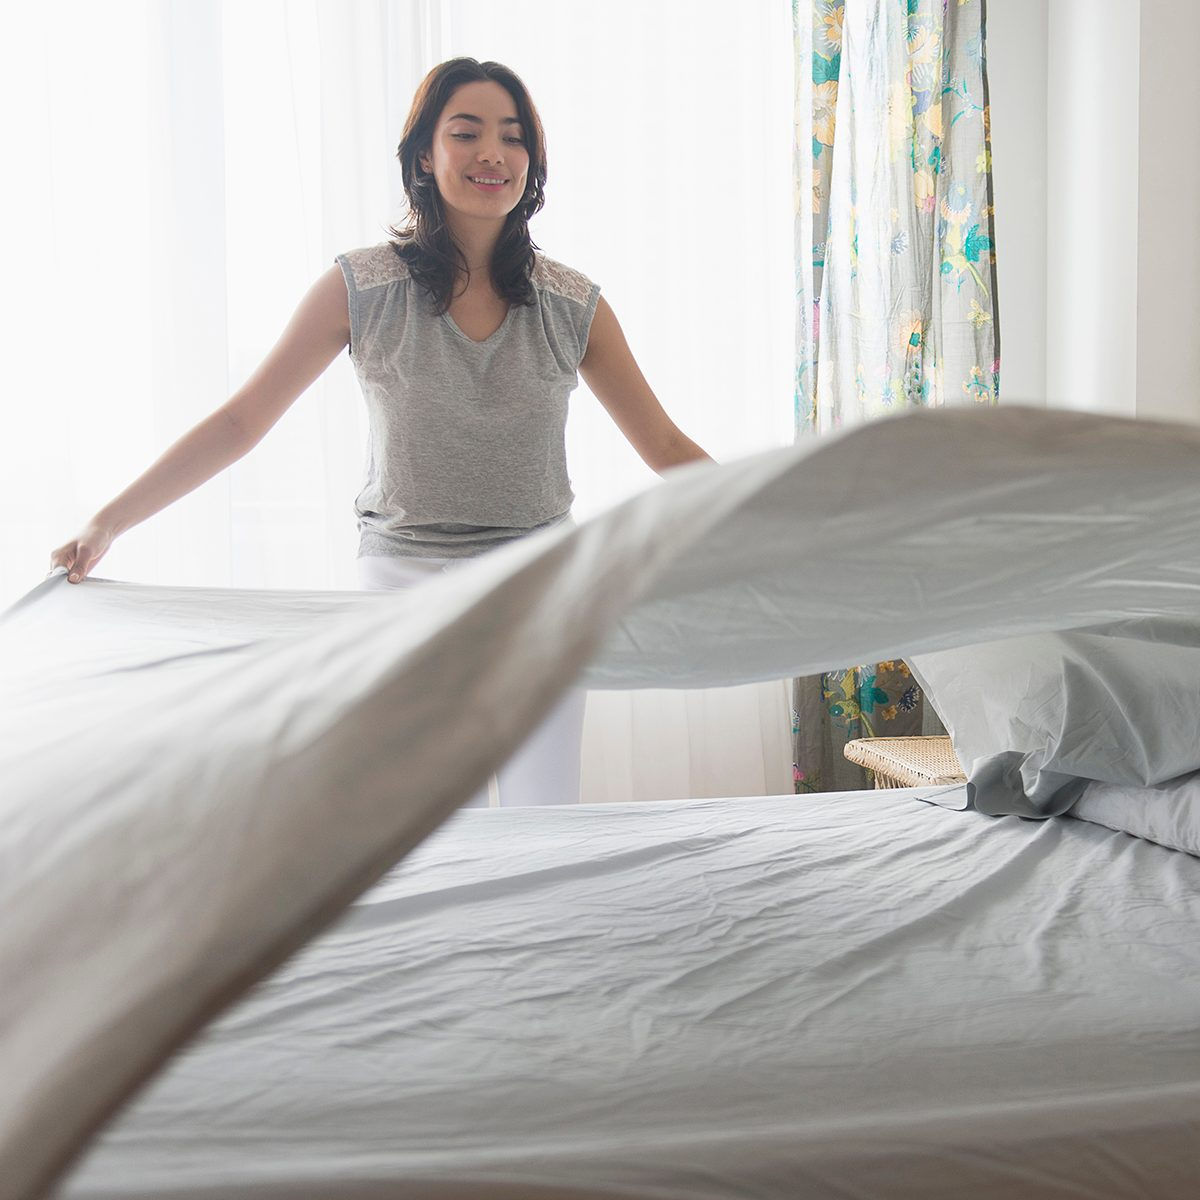 Young woman spreading sheet on bed